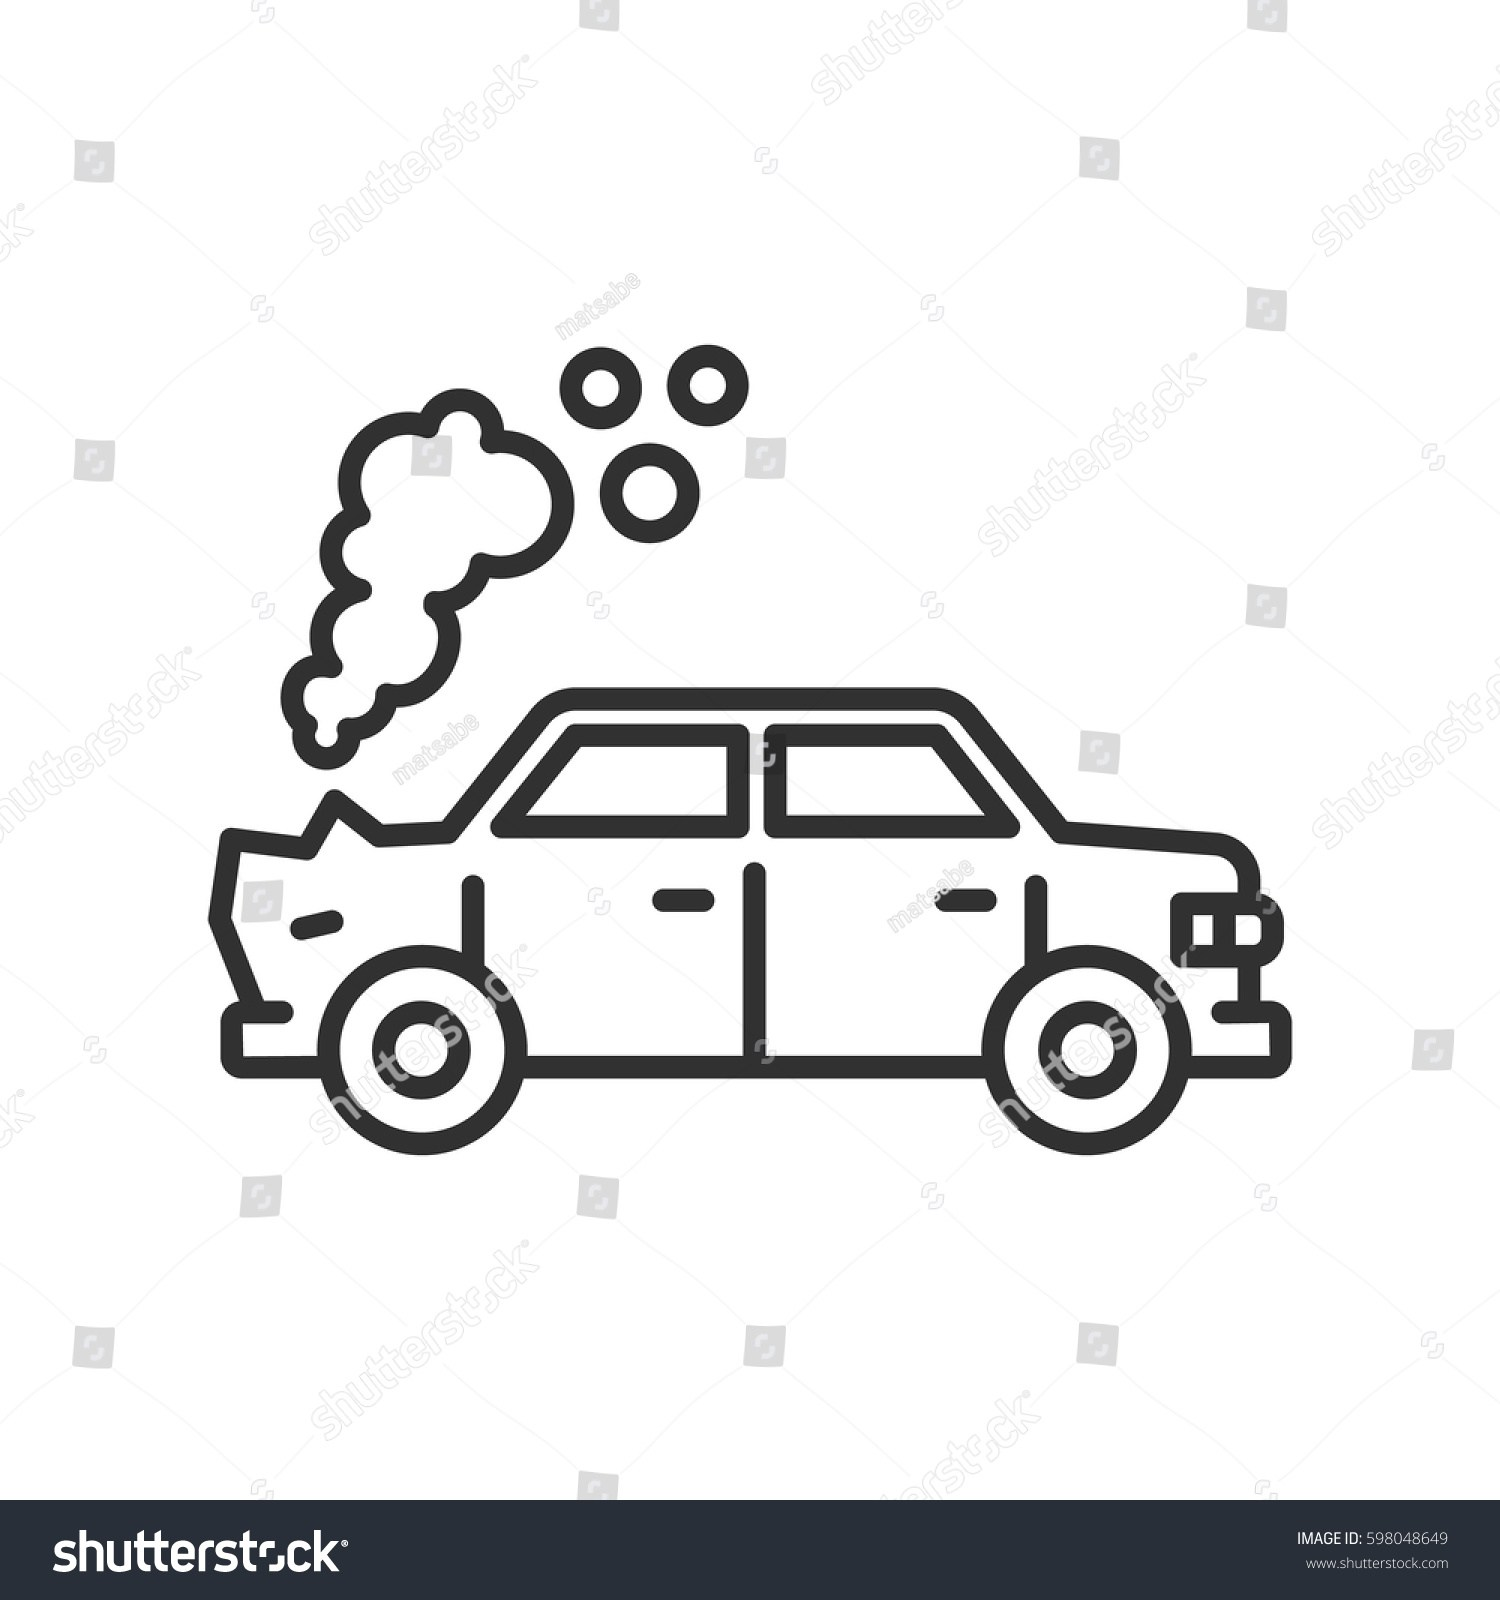 Smoke from car clipart black and white 7 » Clipart Portal.